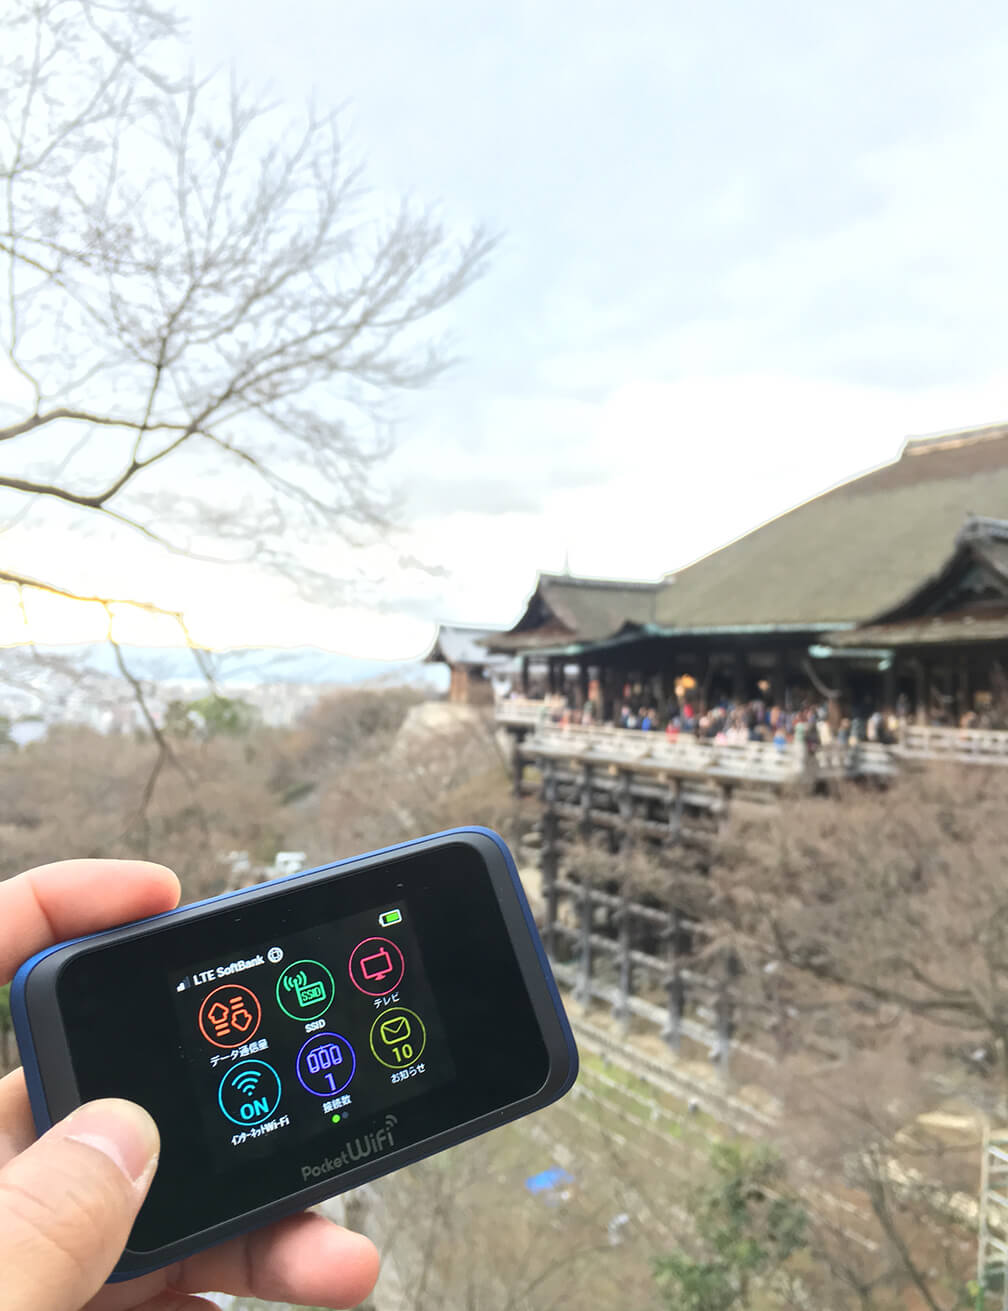 Get a full access to the Internet with Japan rental pocket